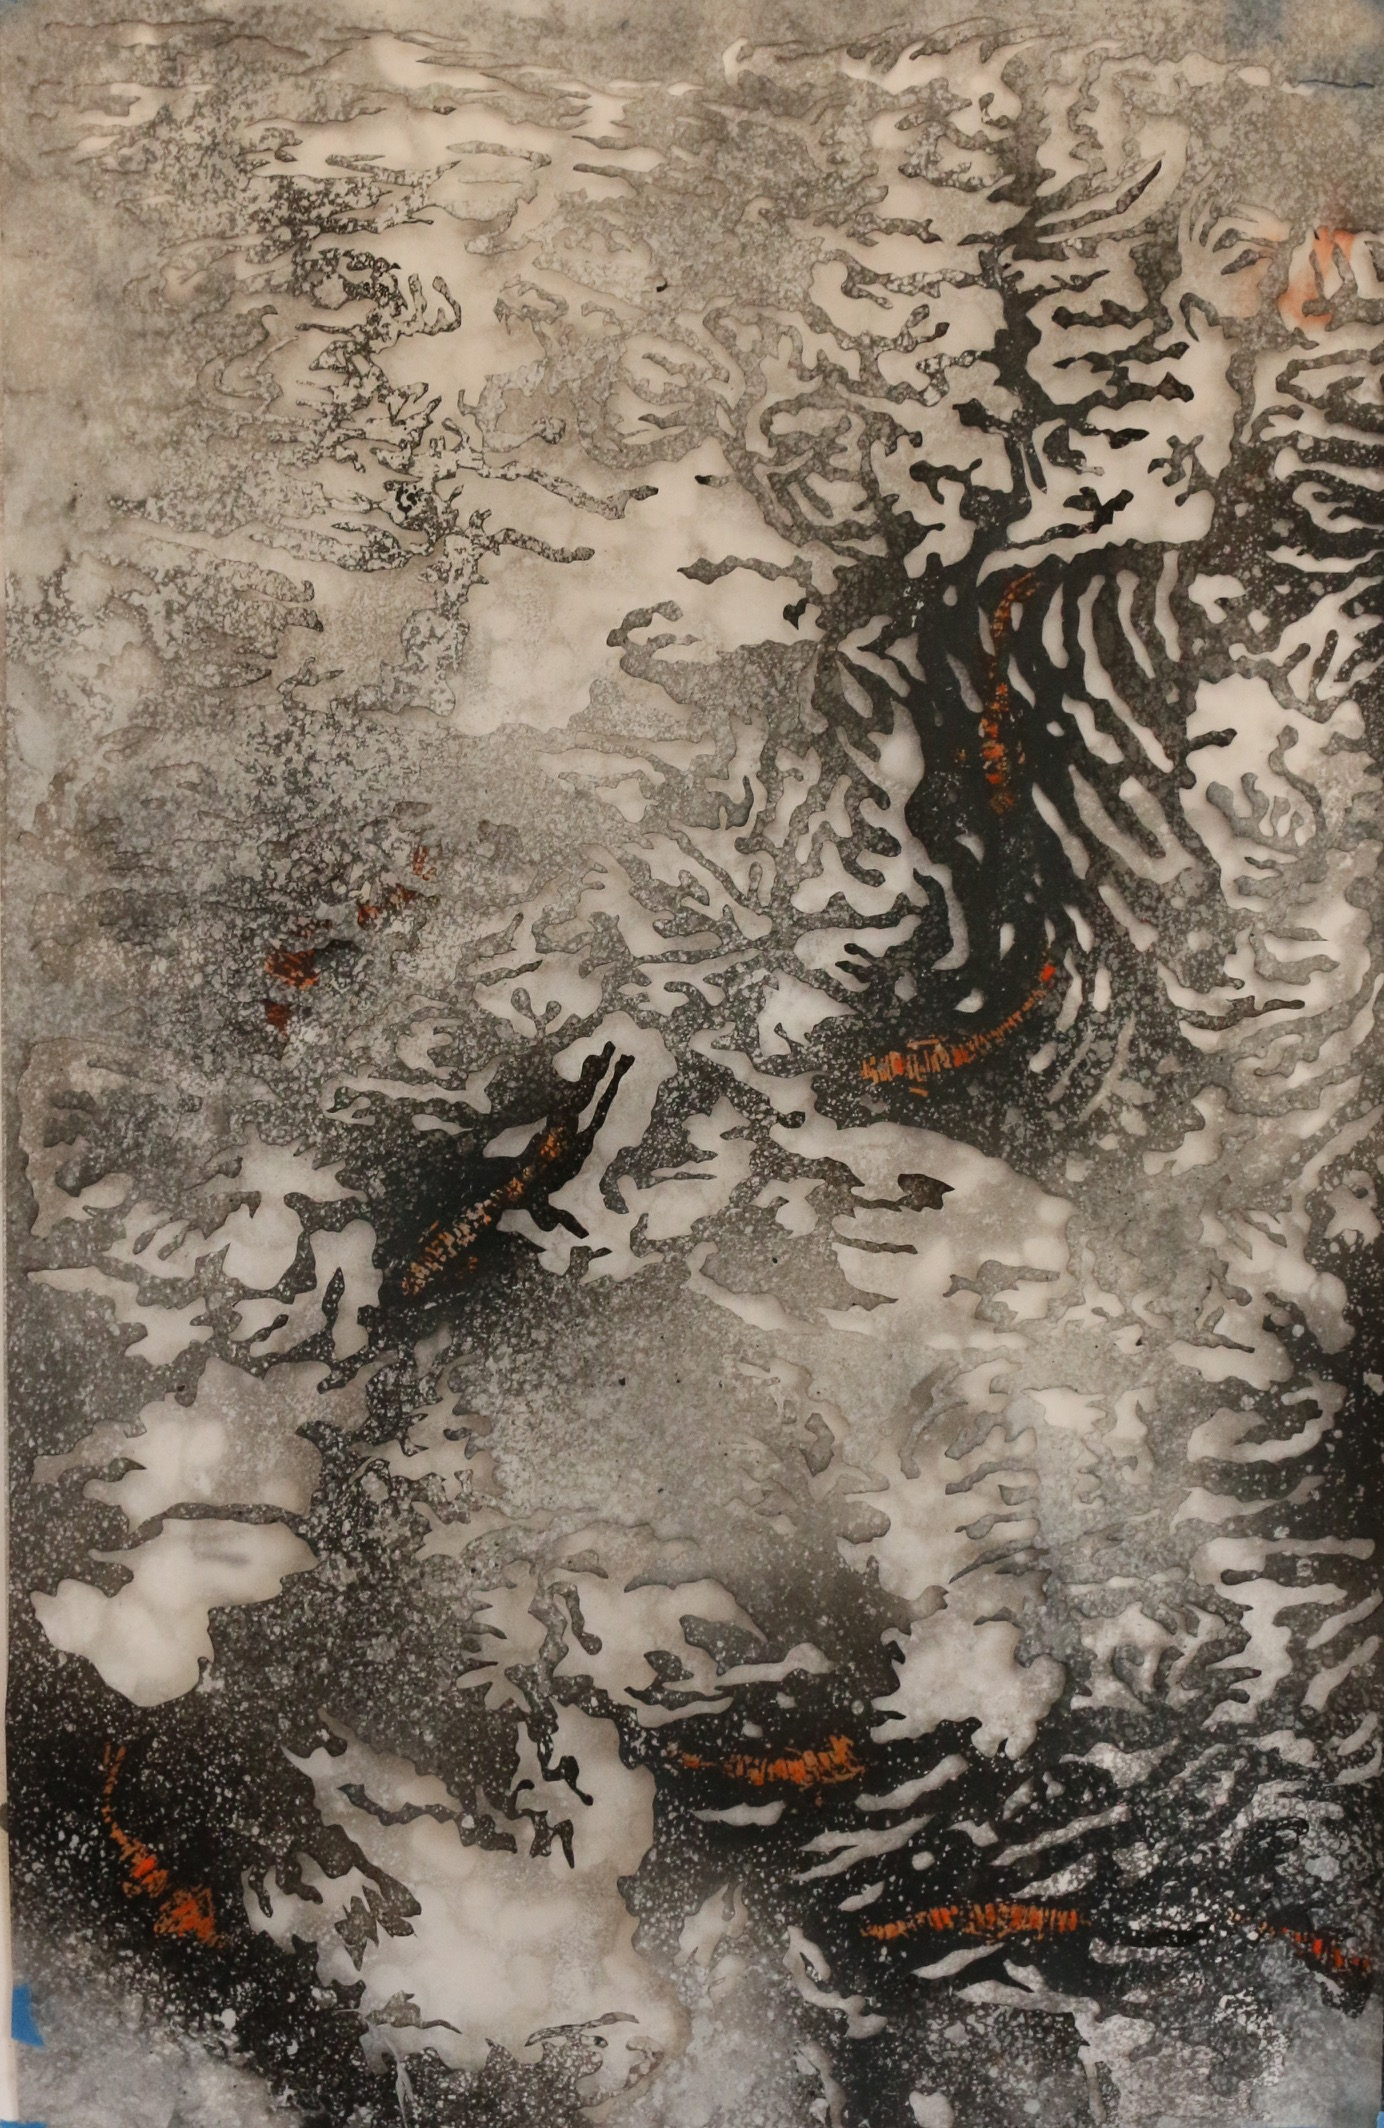 9.The Lily Pond V (Left Panel)